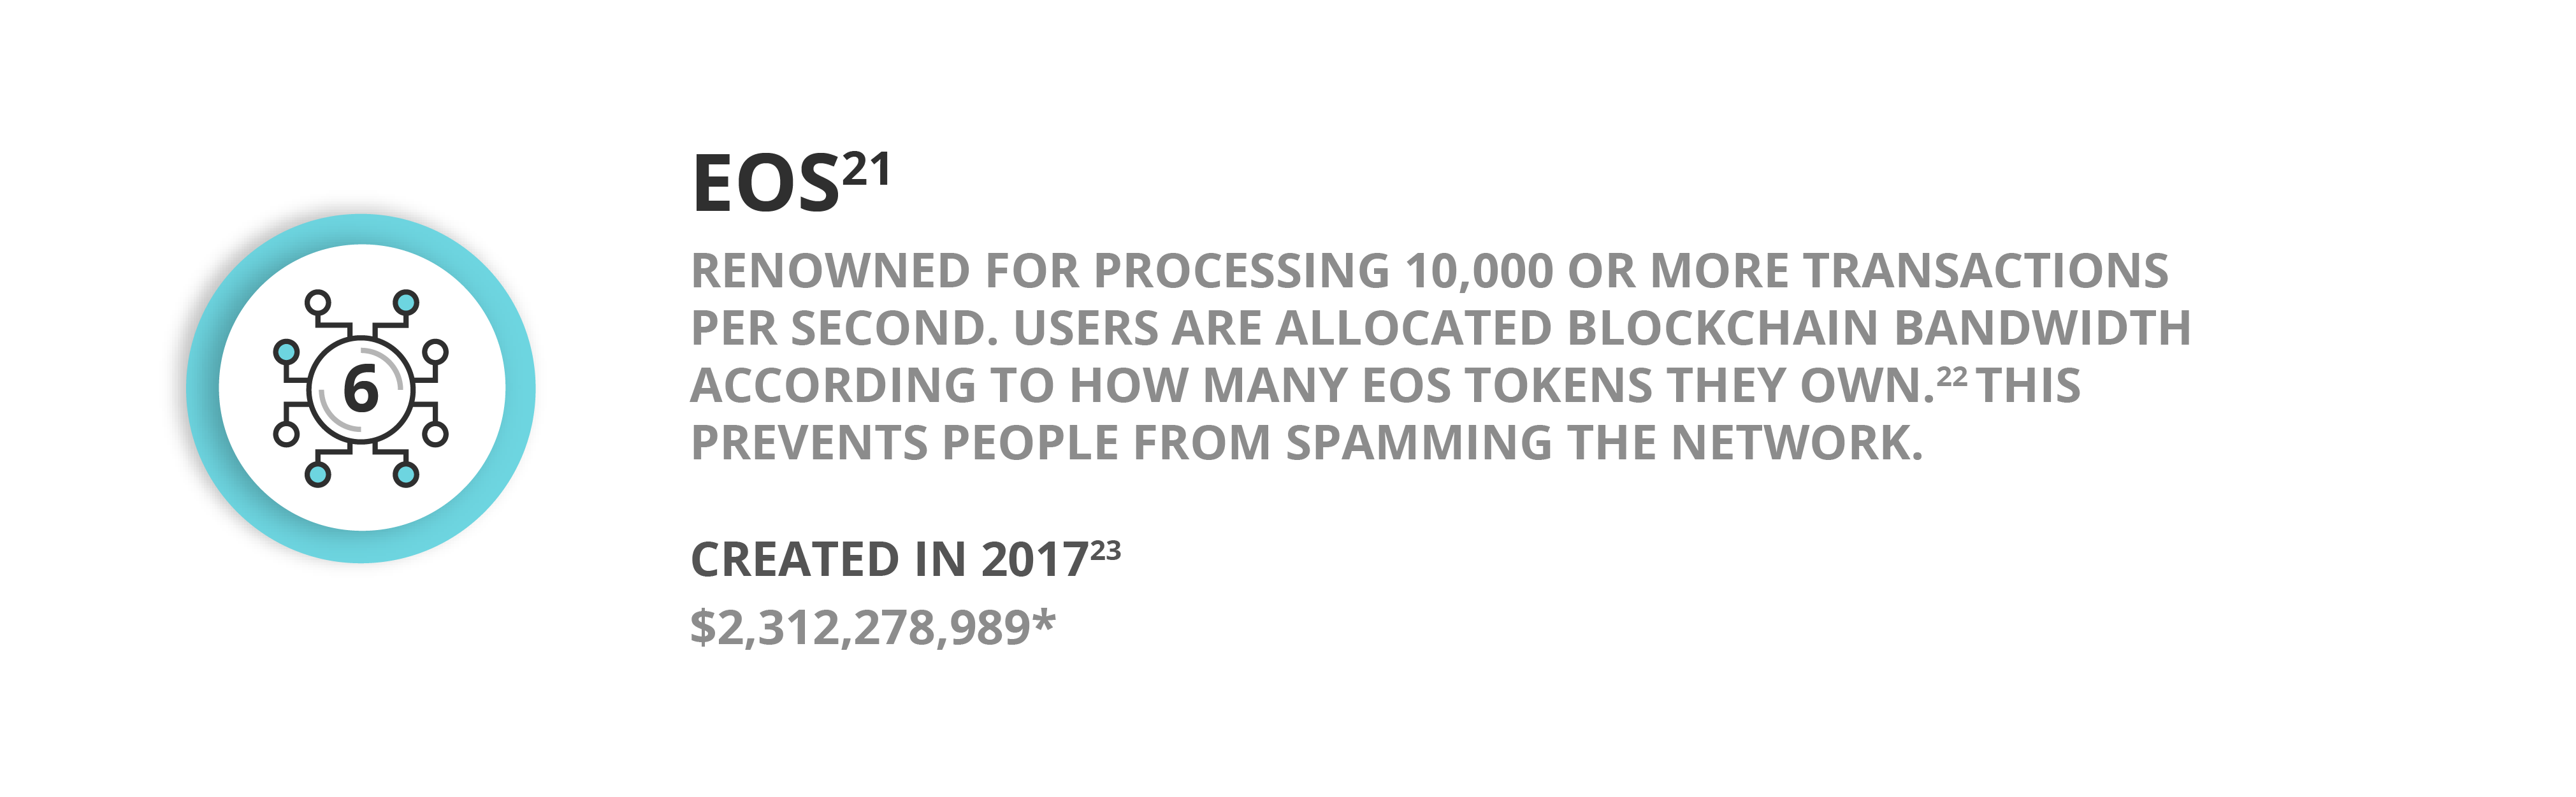 EOS - Renowned for processing 10000 or more transactions per second